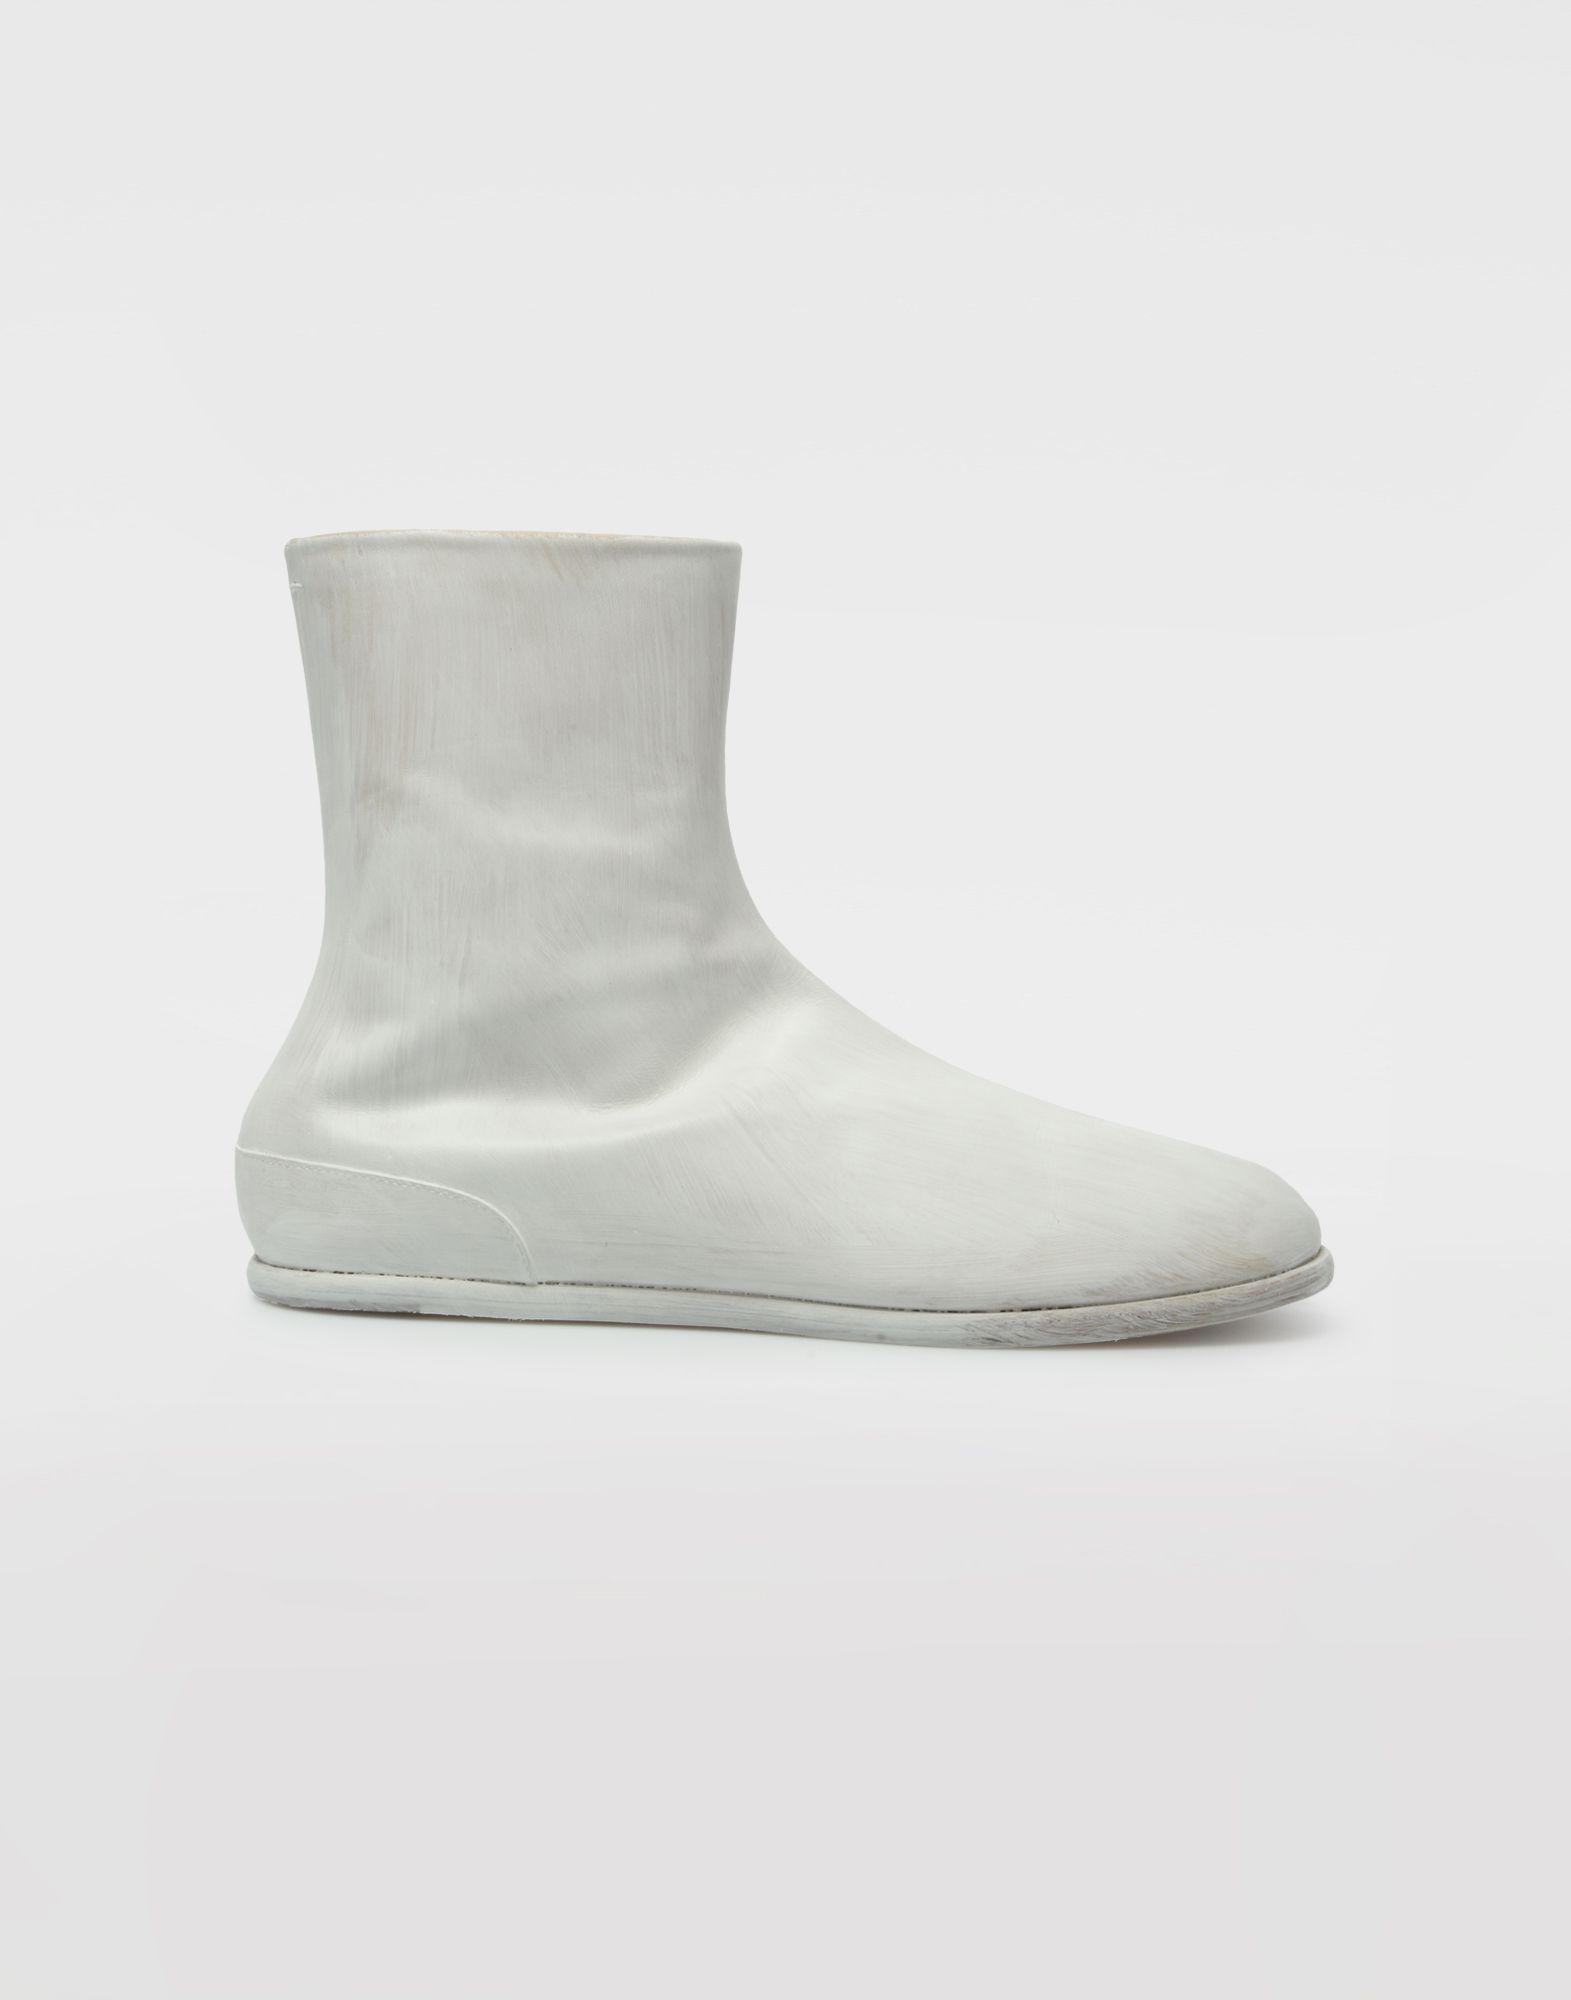 MAISON MARGIELA Painted leather Tabi boots Tabi boots Man f